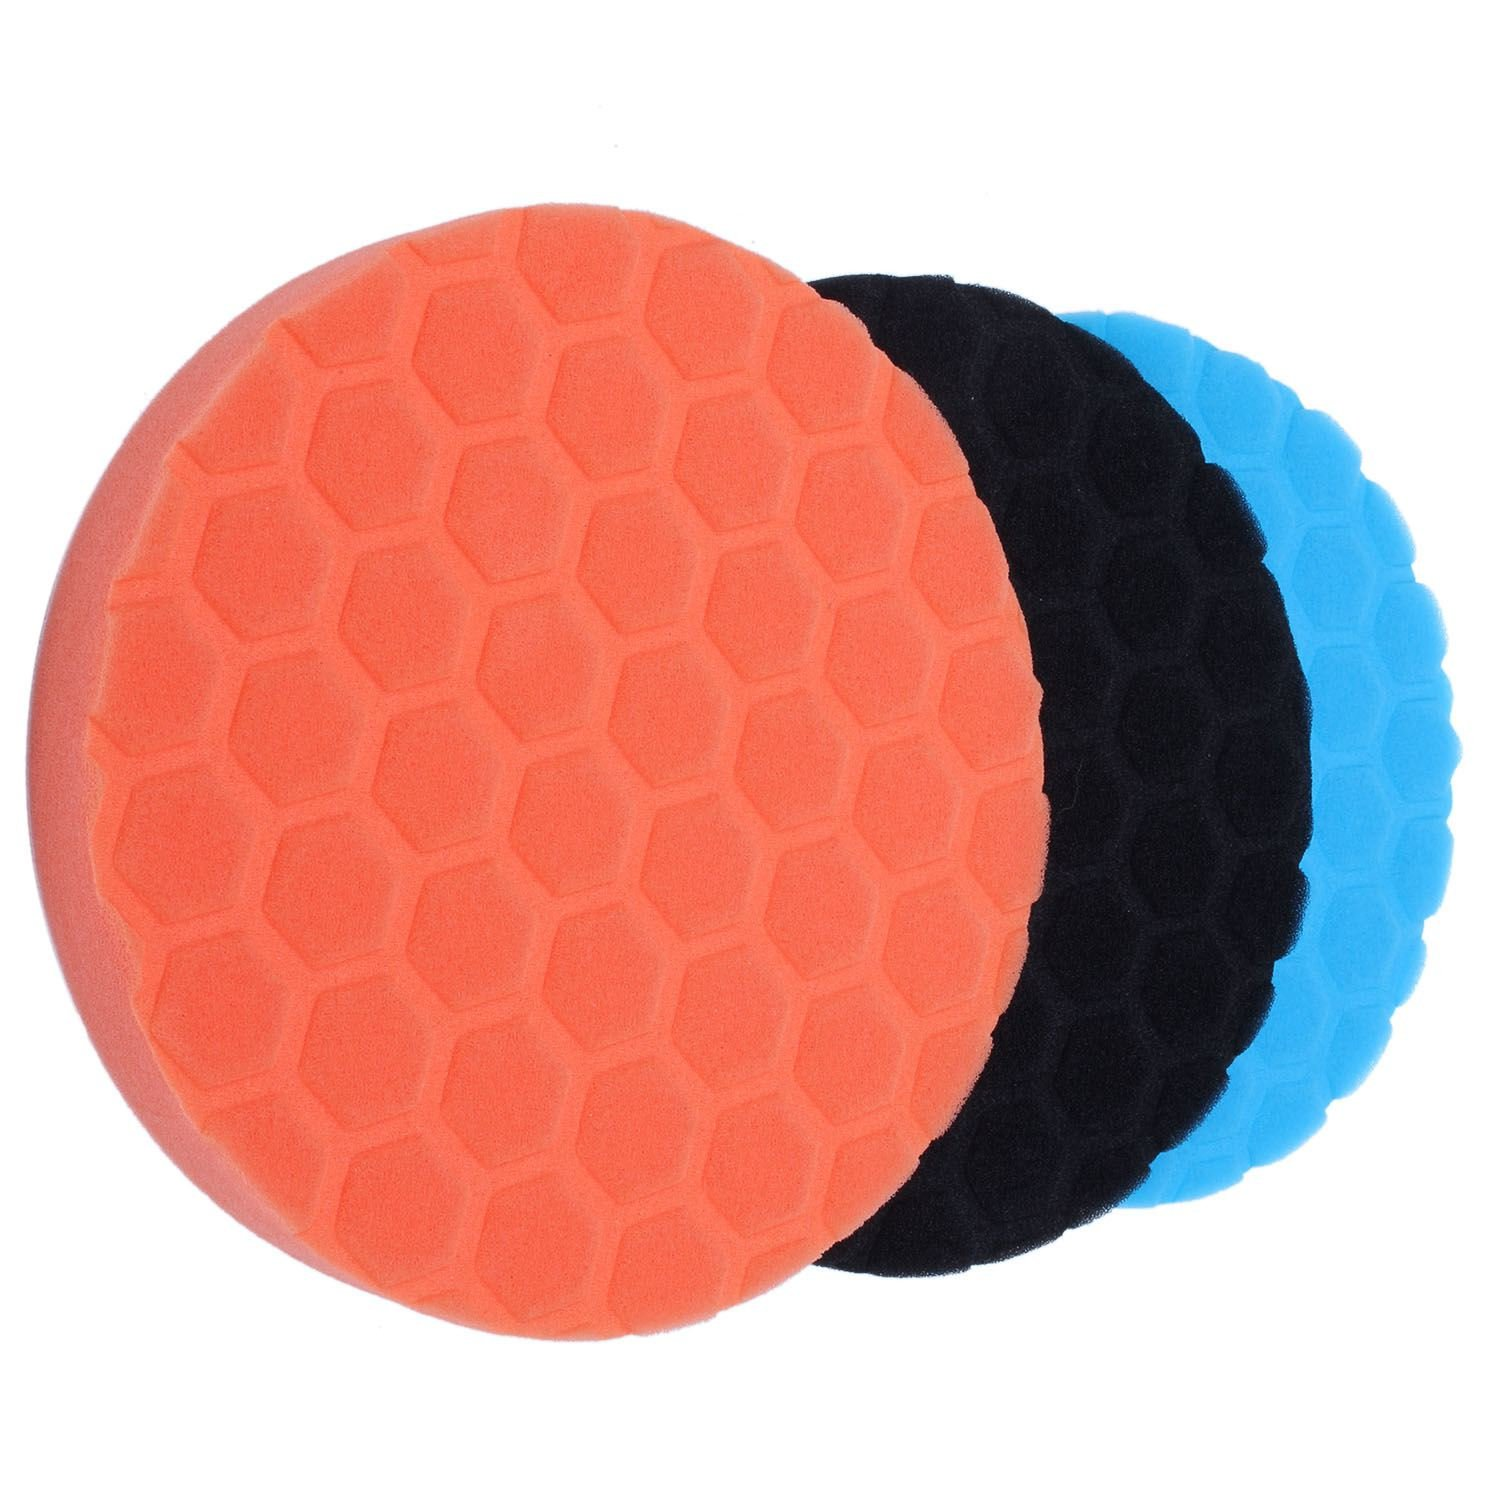 TOOGOO 3X Hex-Logic Buff Buffering Polishing Pad kit Auto Car Polisher 7 inch 109194A5